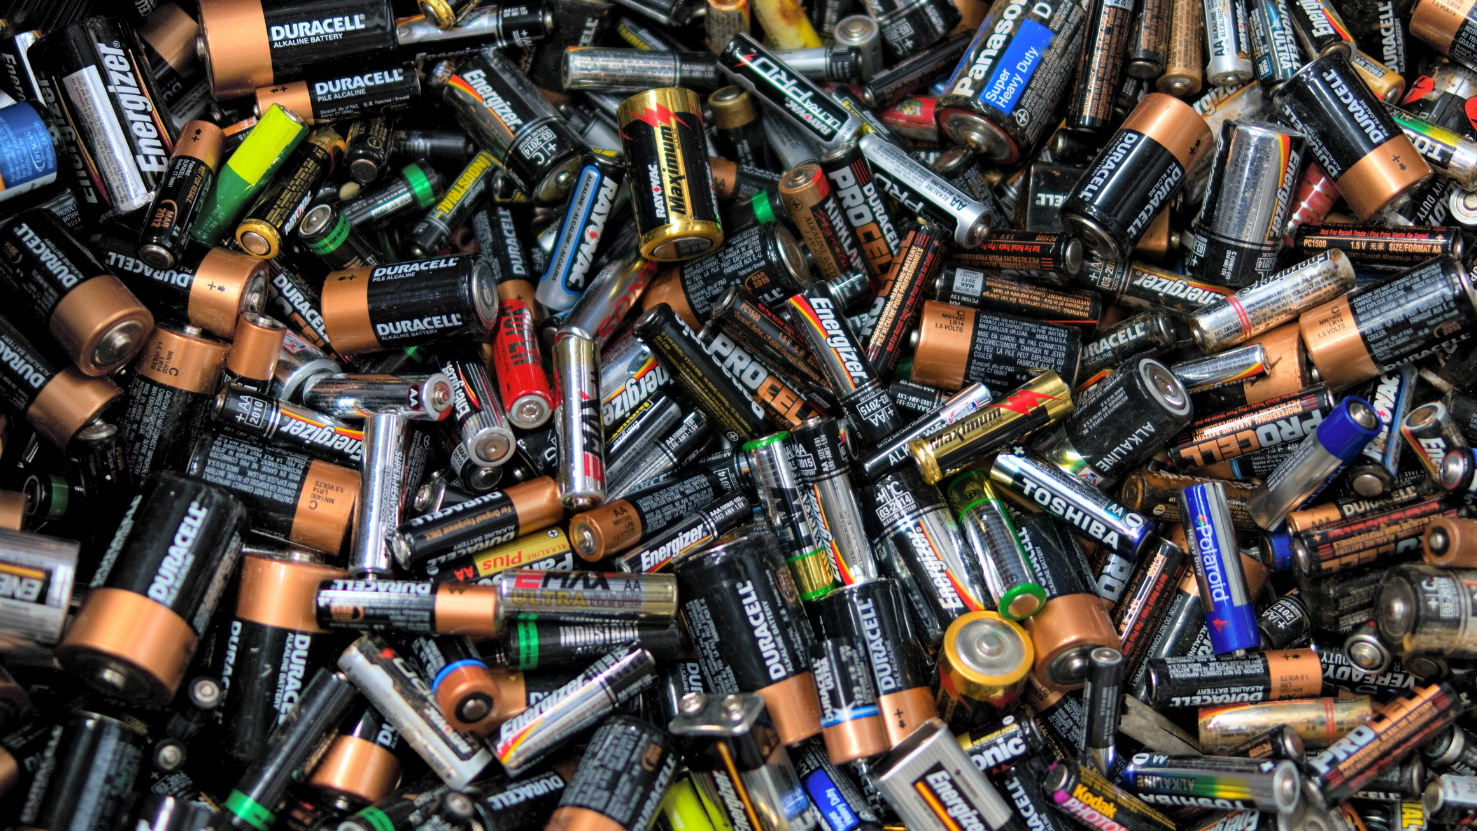 What To Do With Old Worn Out Batteries